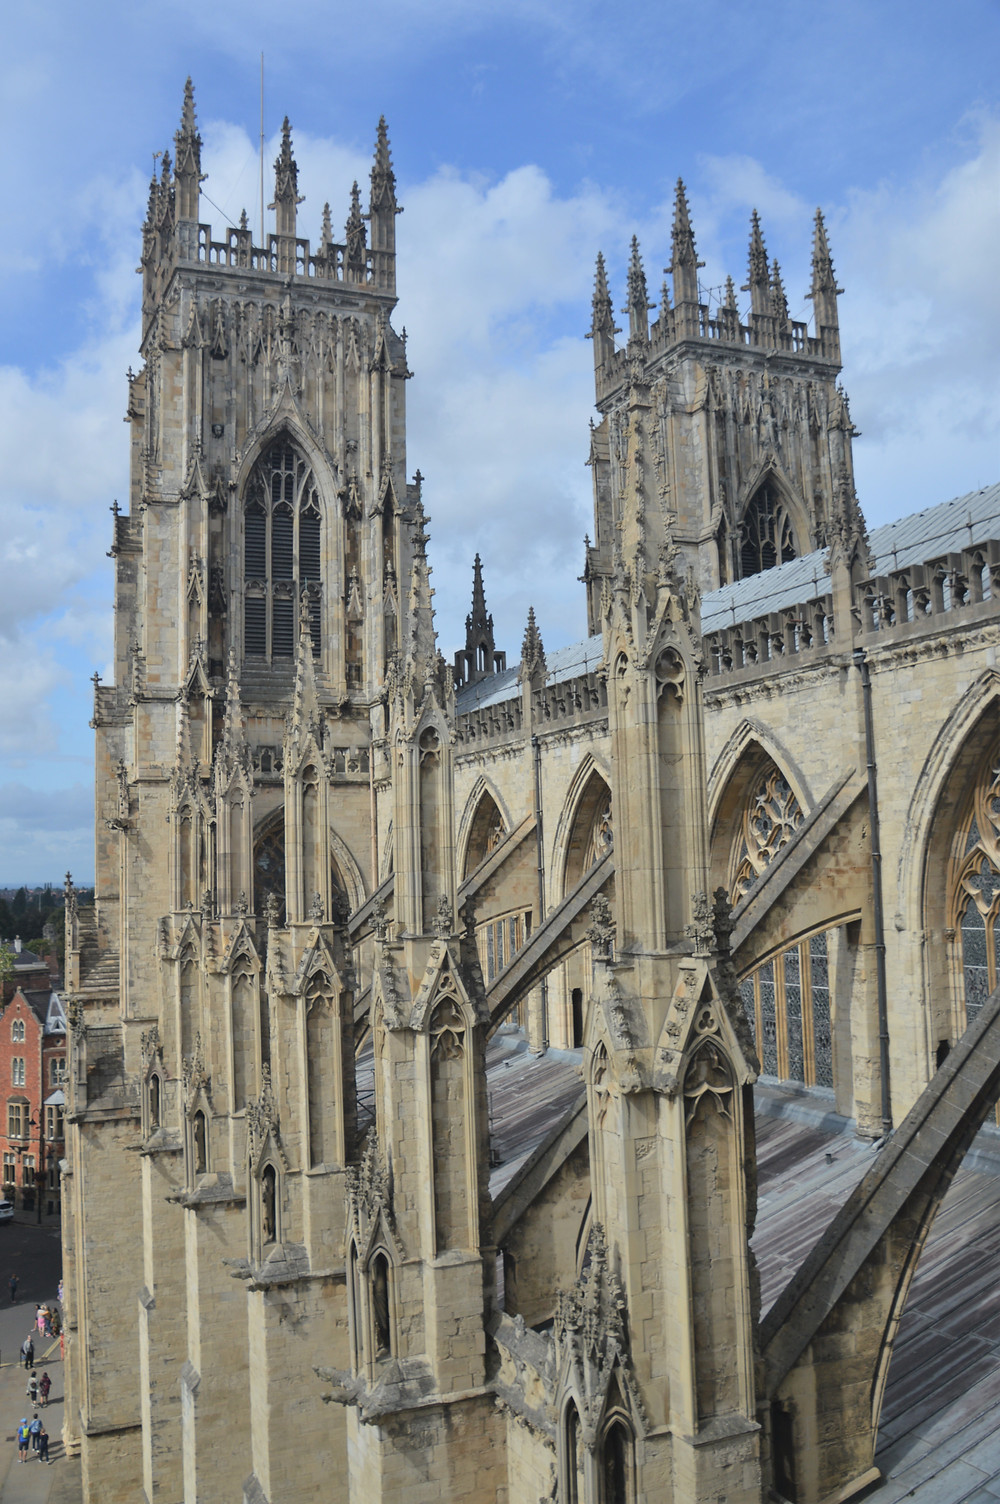 West Towers of York Minster from the roof of the South Transept. Intricate stonework of the West Towers of York Minster